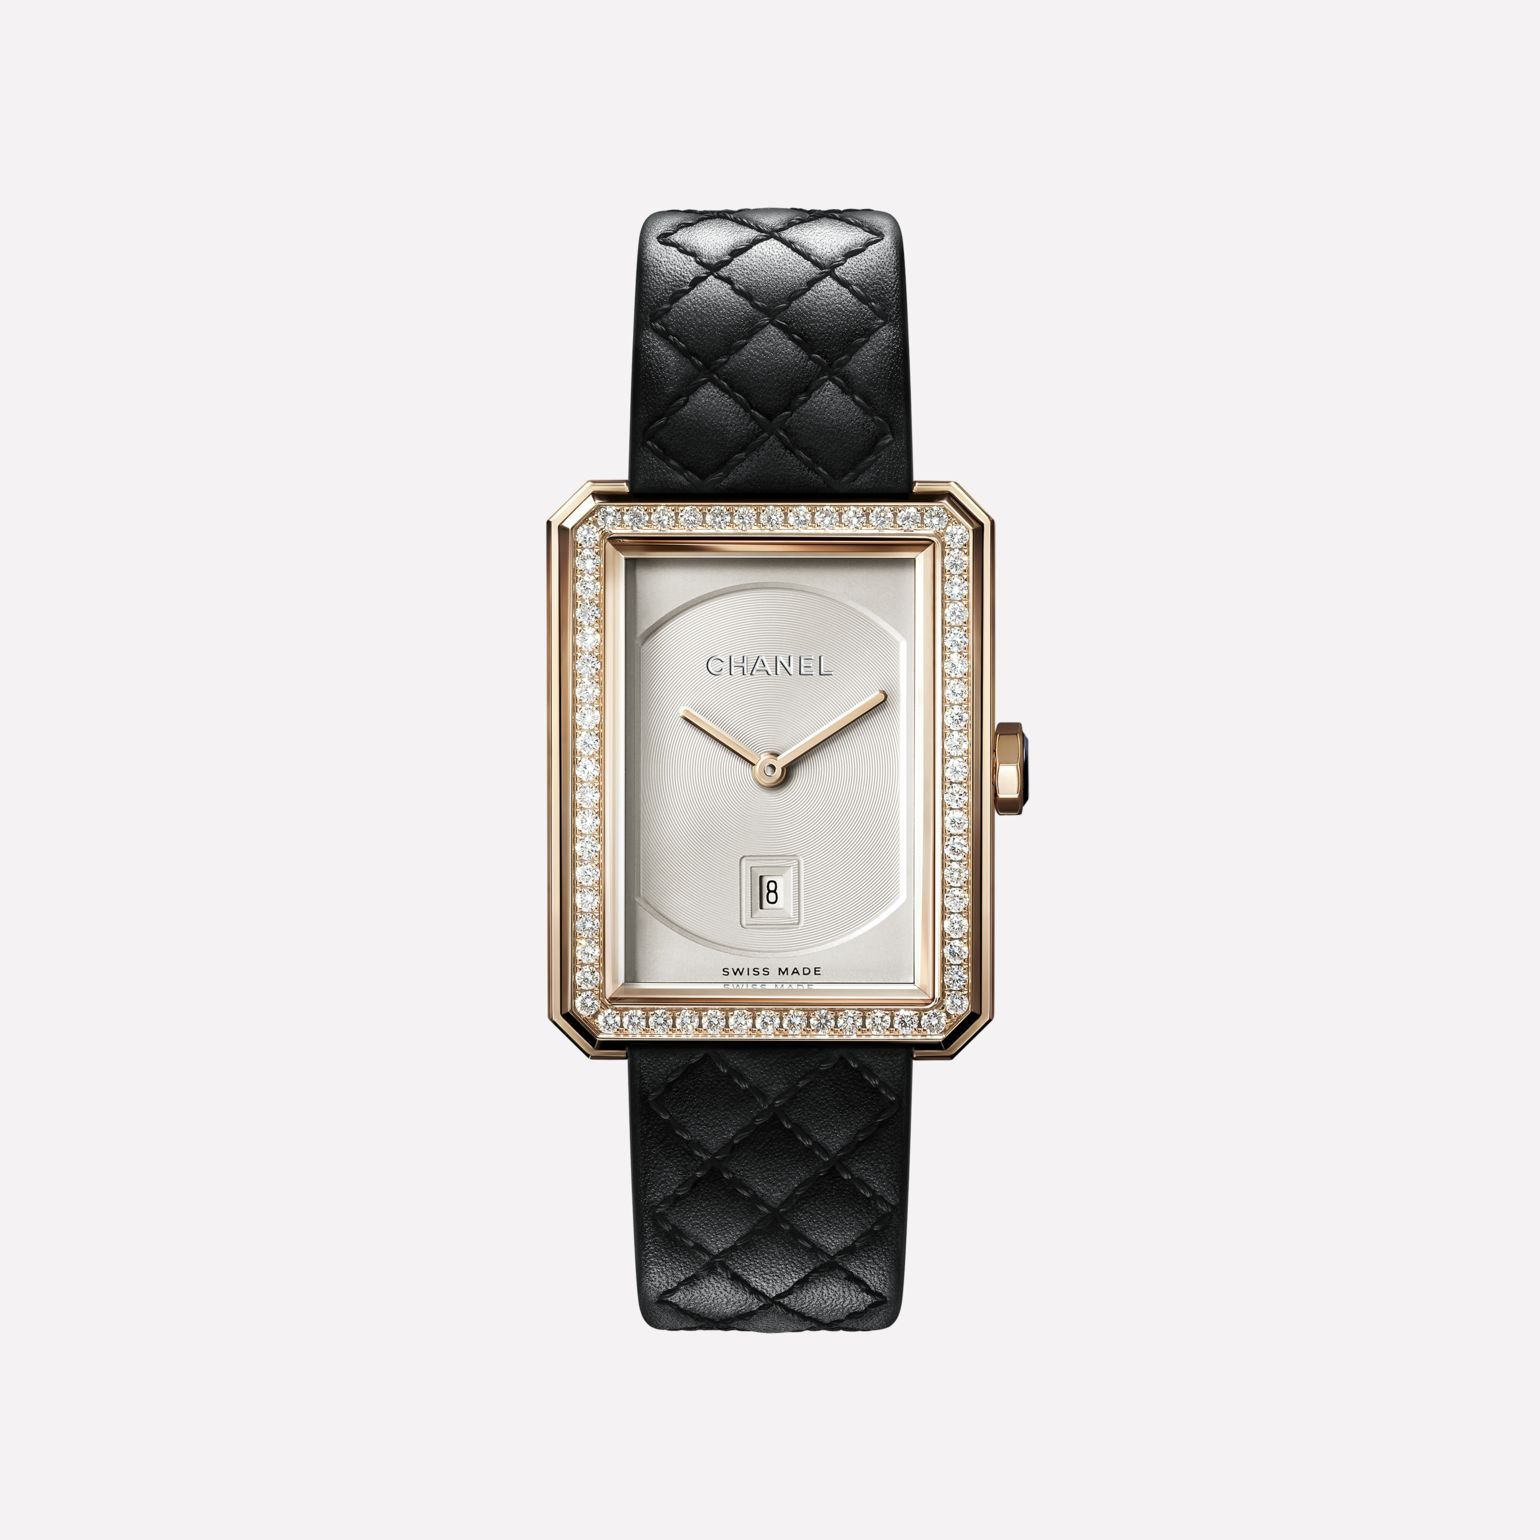 BOY·FRIEND Watch Medium version, BEIGE GOLD and diamonds, quilted pattern calfskin strap